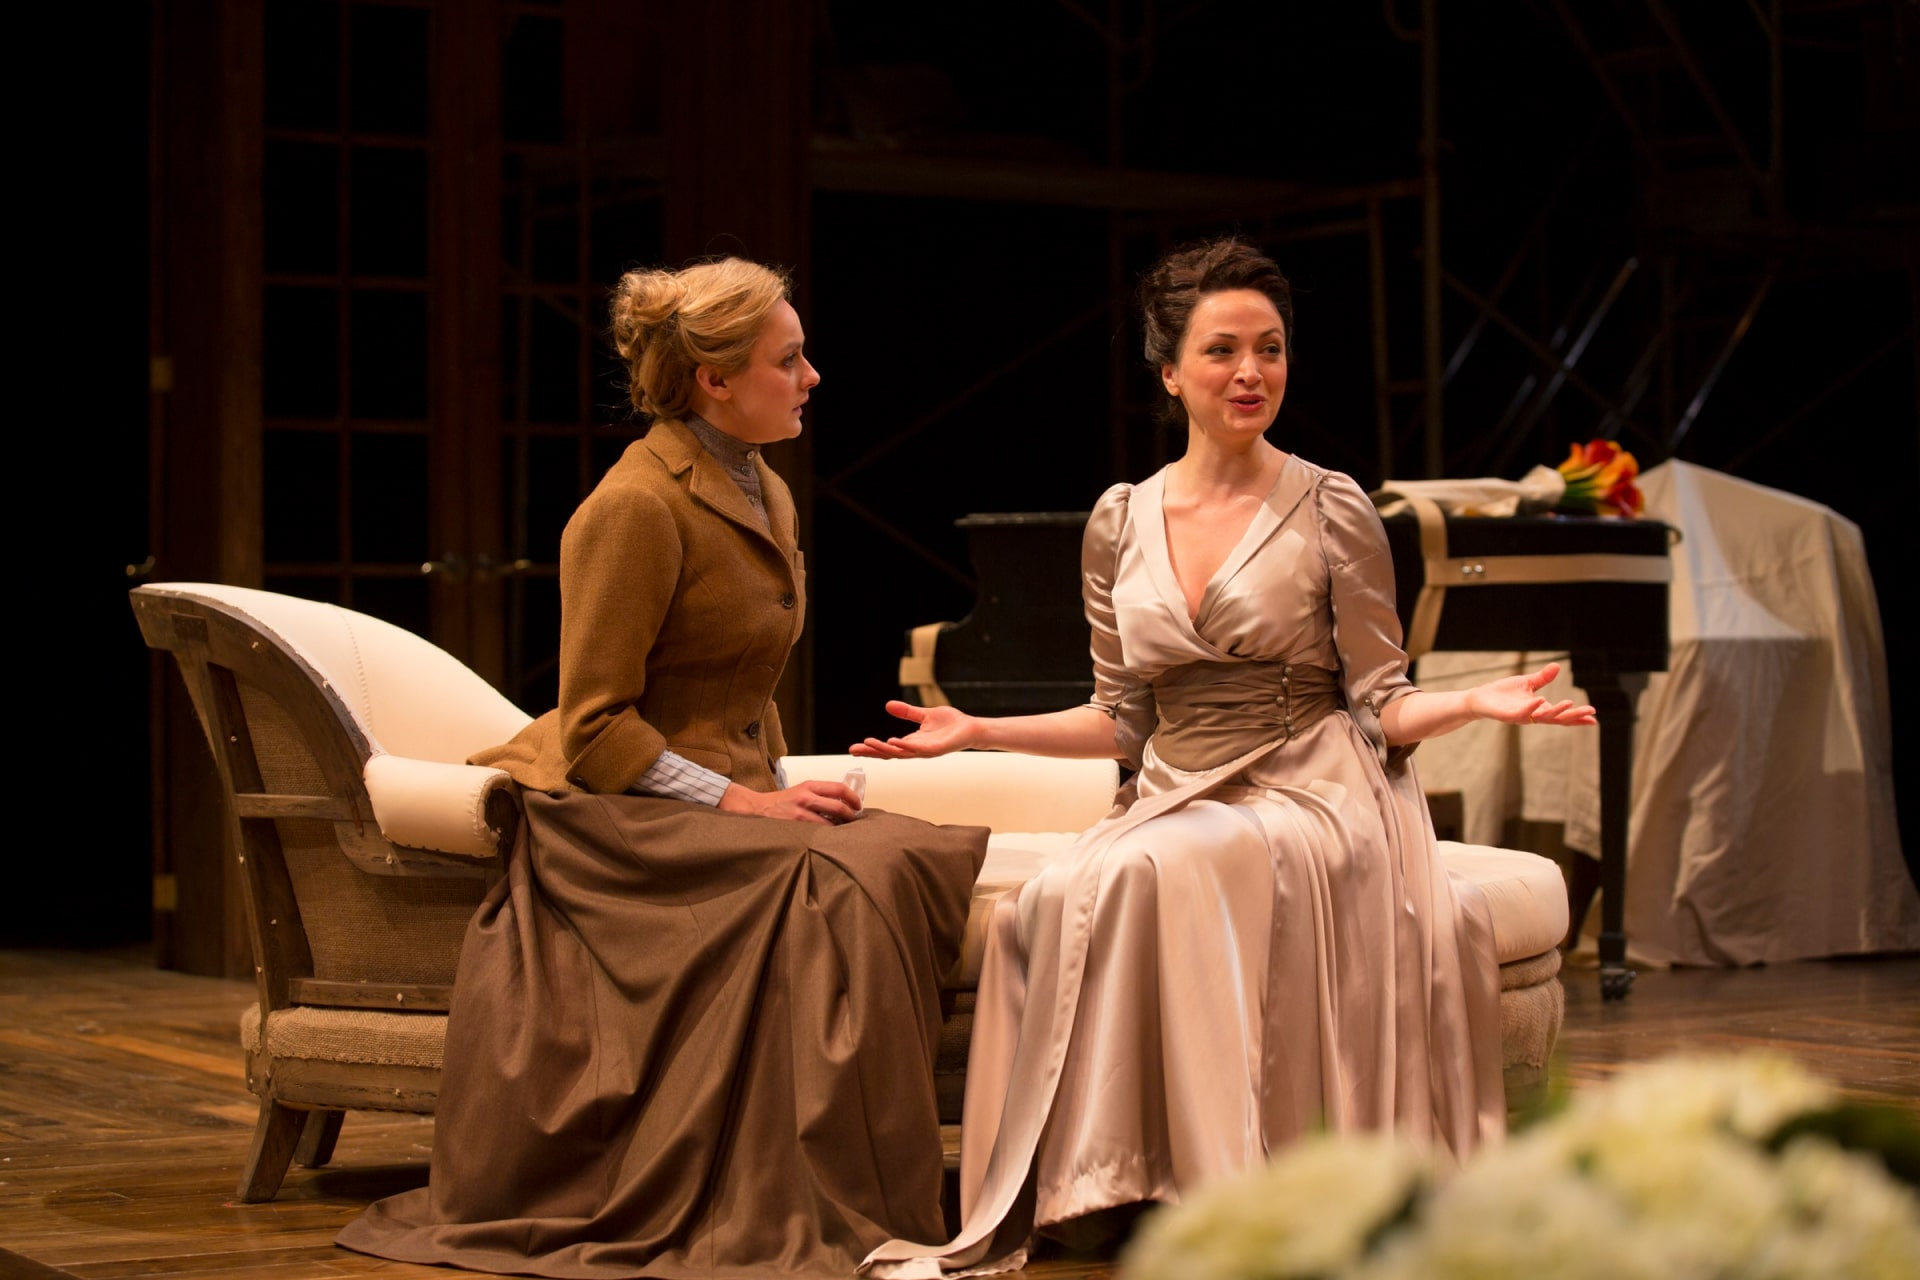 Woman in white silk gown sits speaking with woman in brown suit dress on settee.